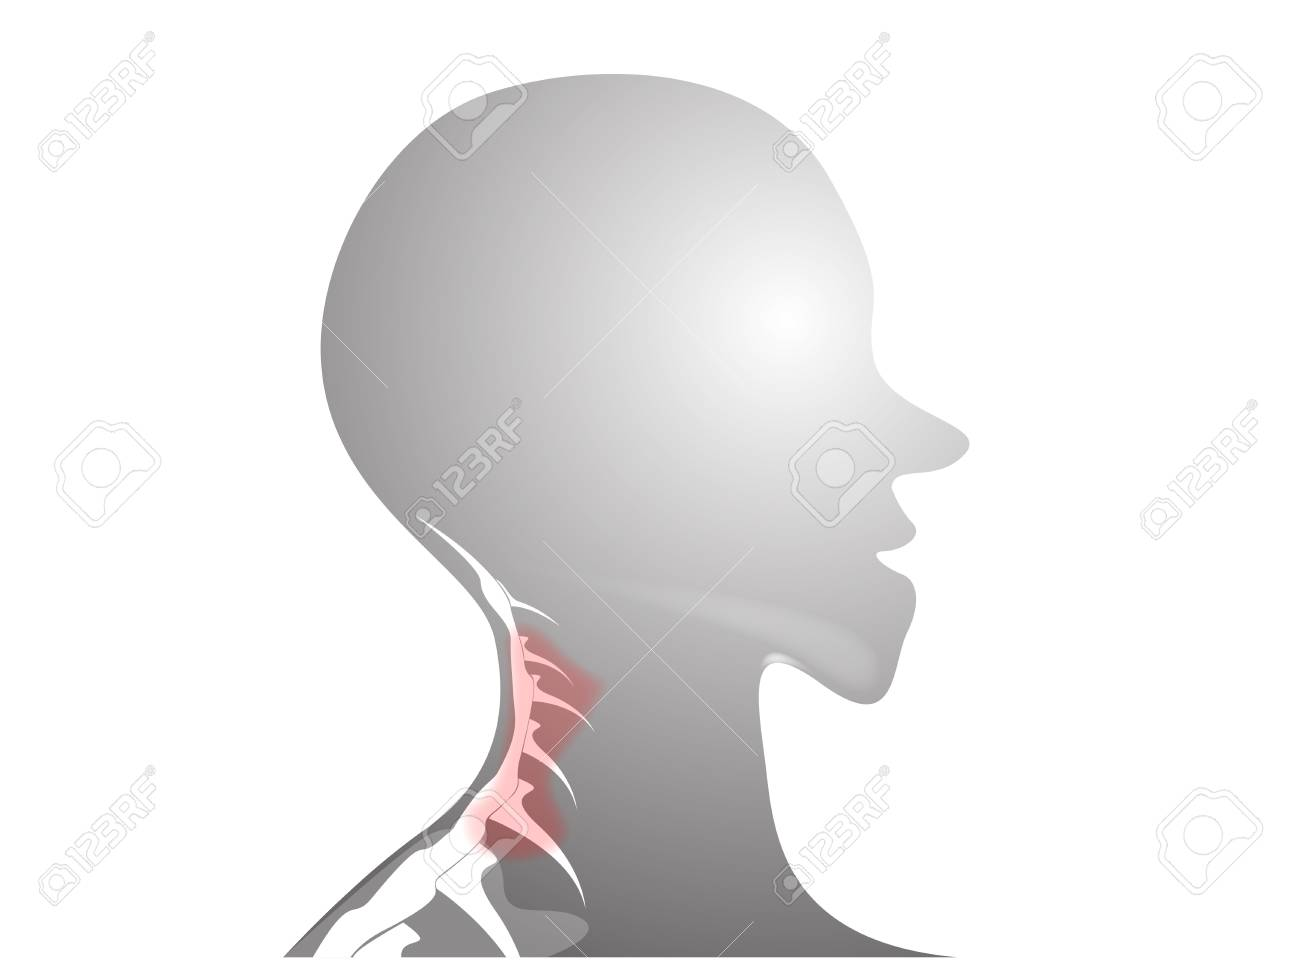 Cervical Spine Anatomy Royalty Free Cliparts Vectors And Stock